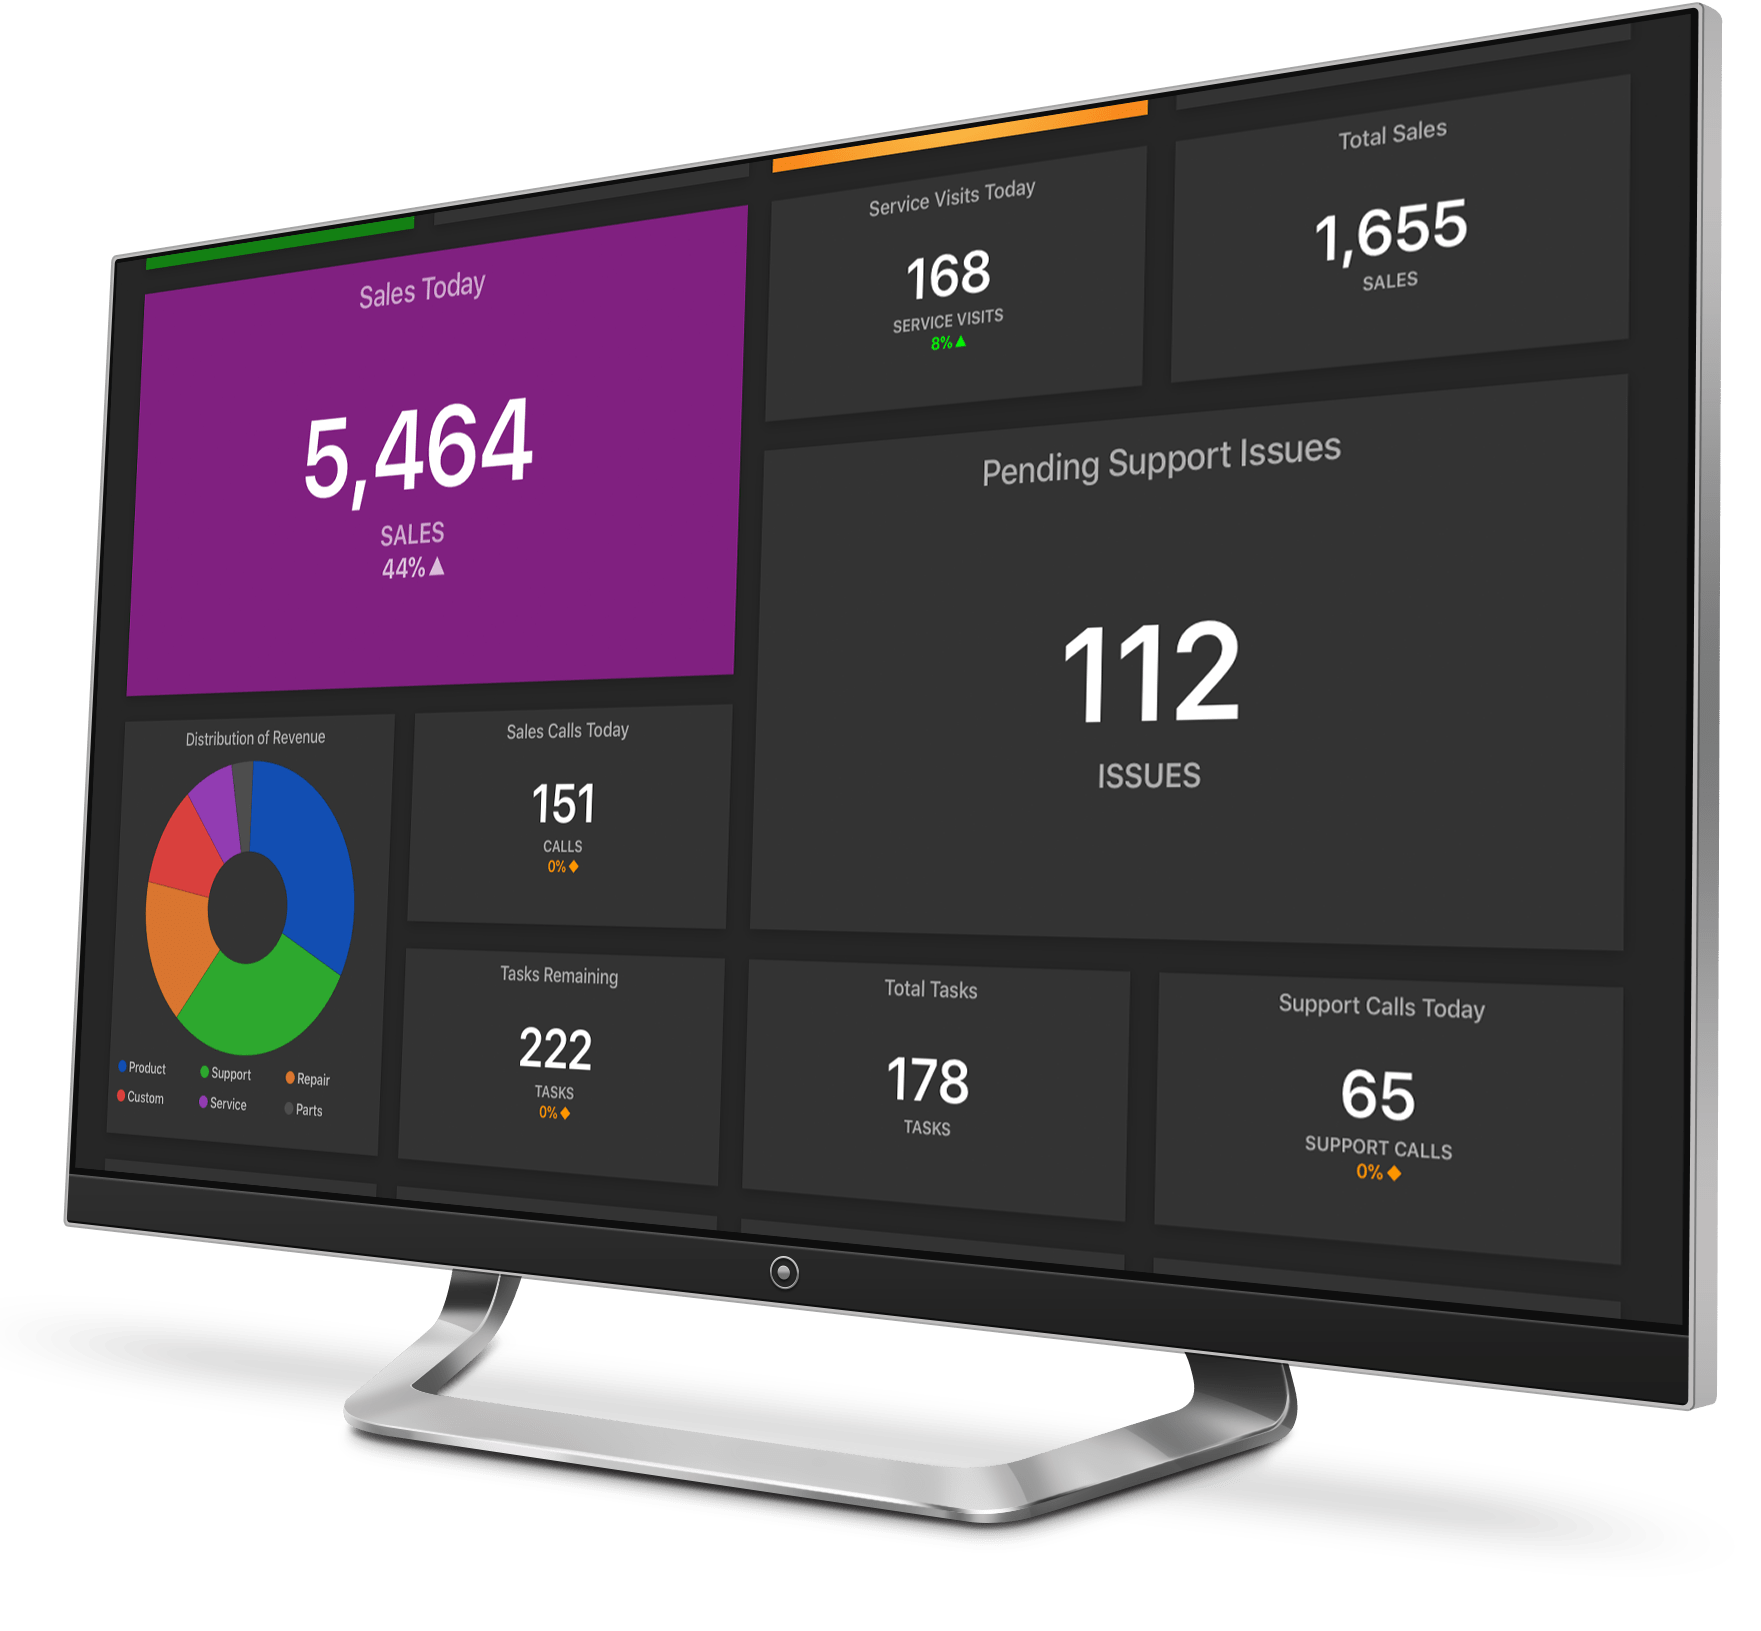 Numerics for Apple TV - The team dashboard app for big screens